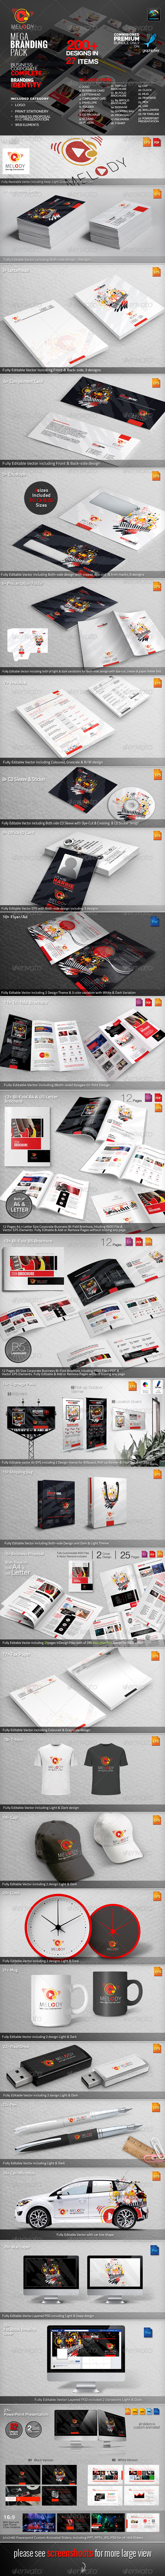 GraphicRiver Melody Corporate Identity Mega Branding Pack 5766613